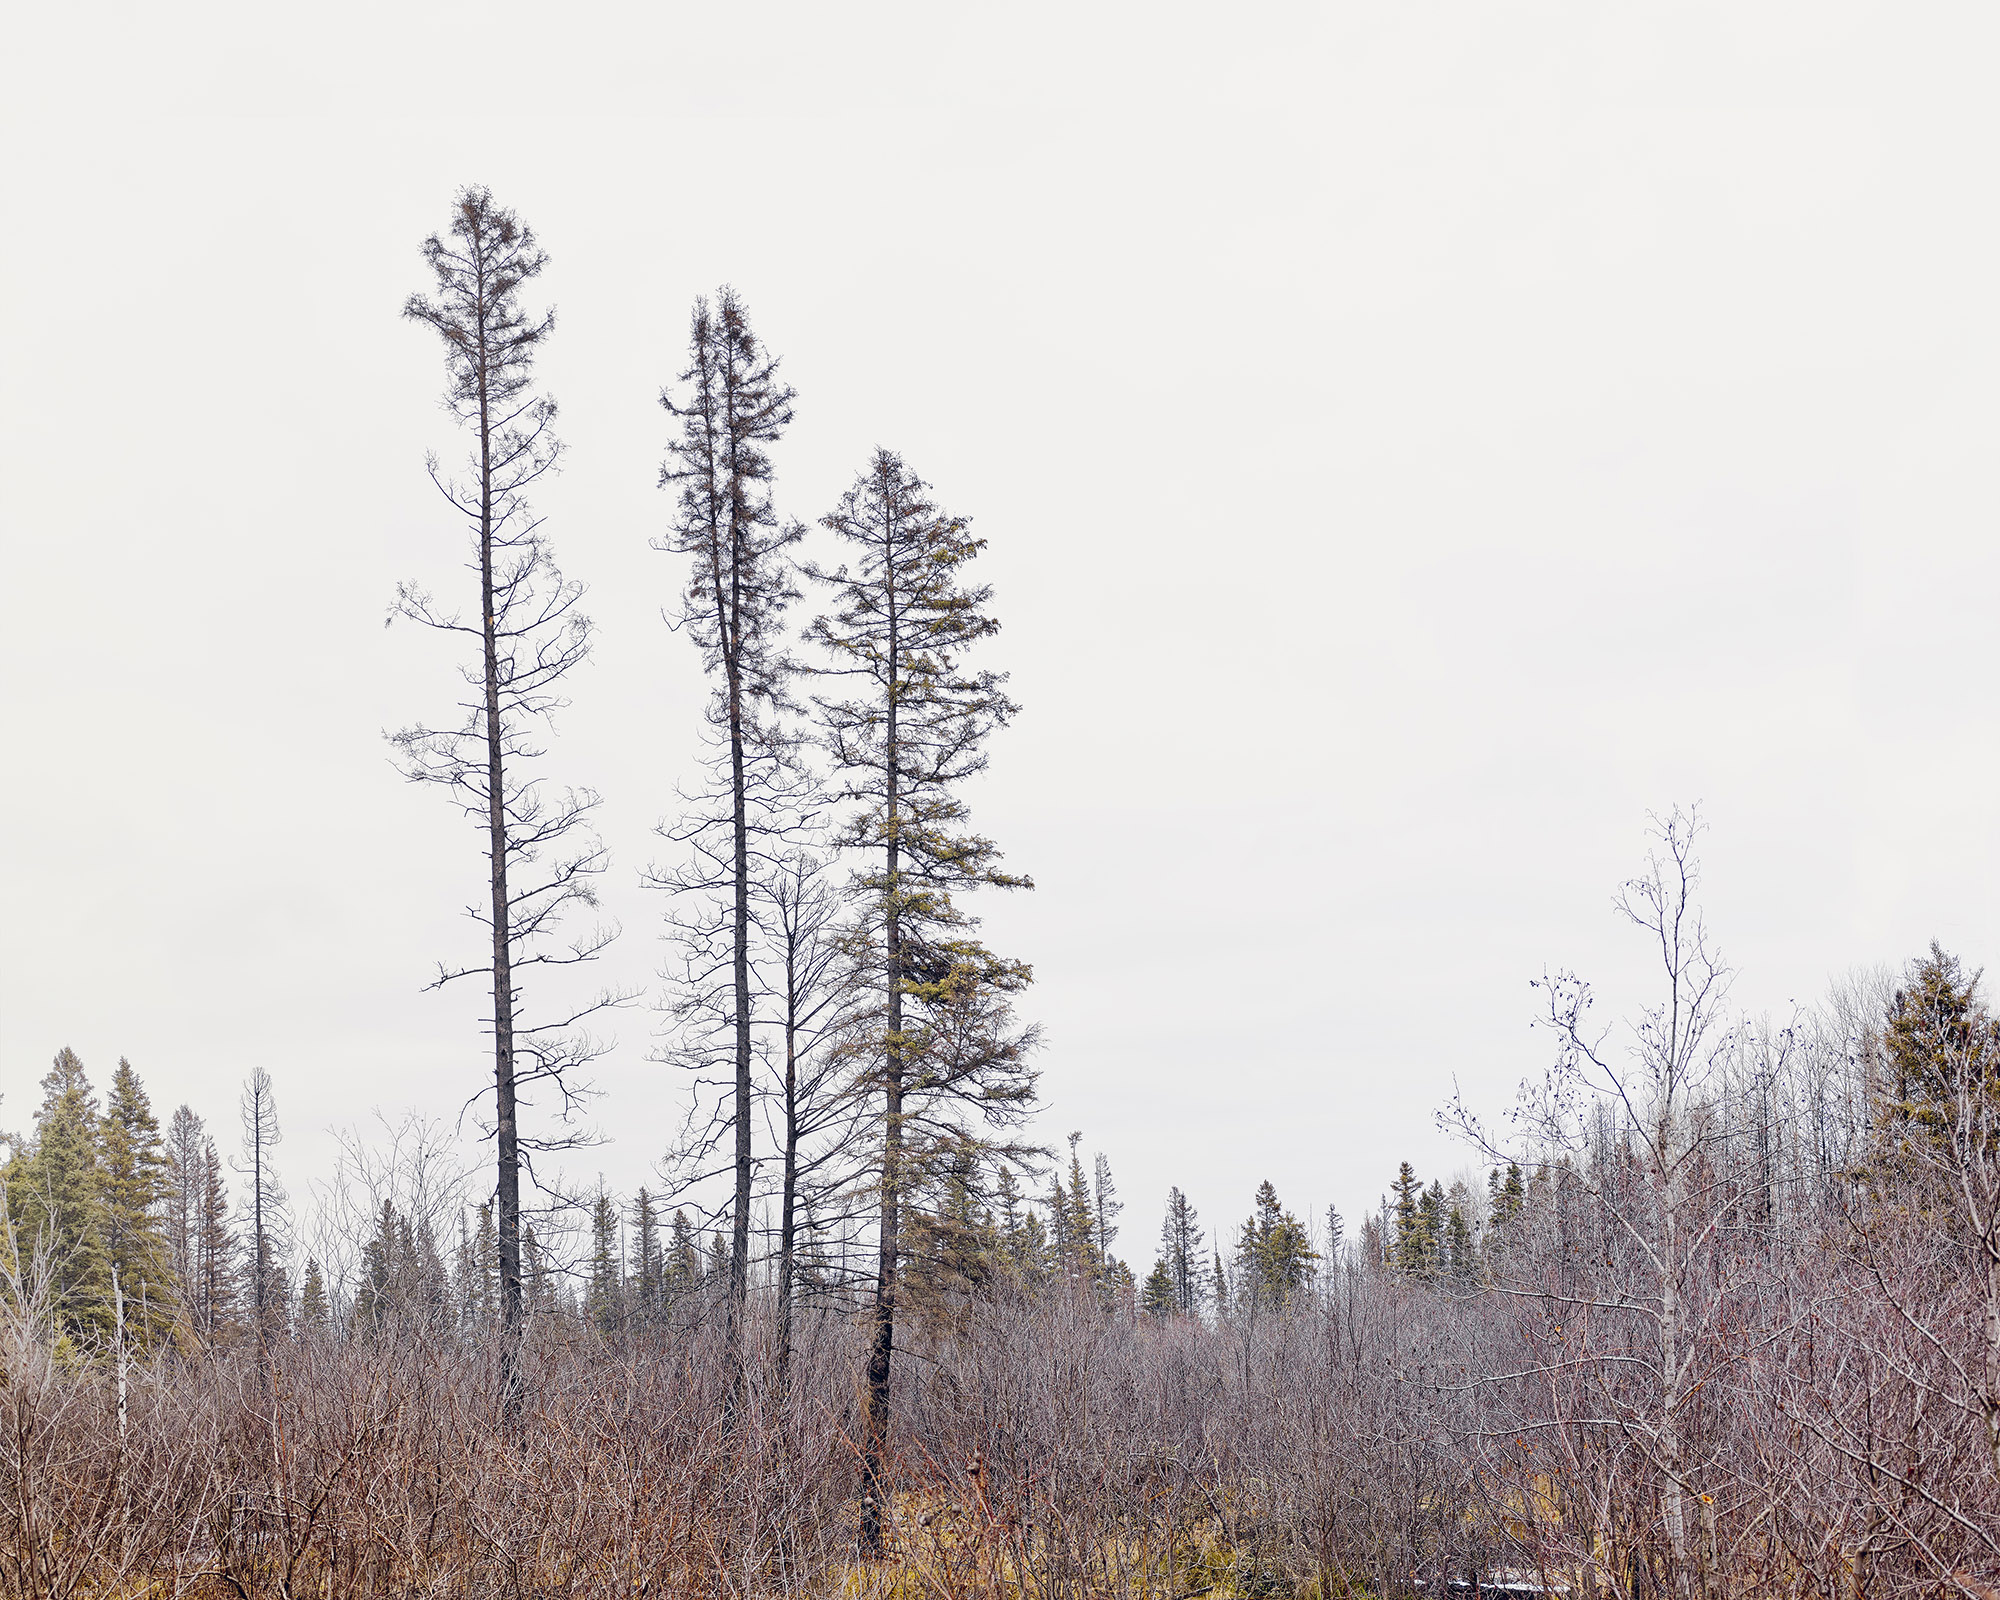 Lodgepole Pines,Fort McMurray, Canada. November, 2016